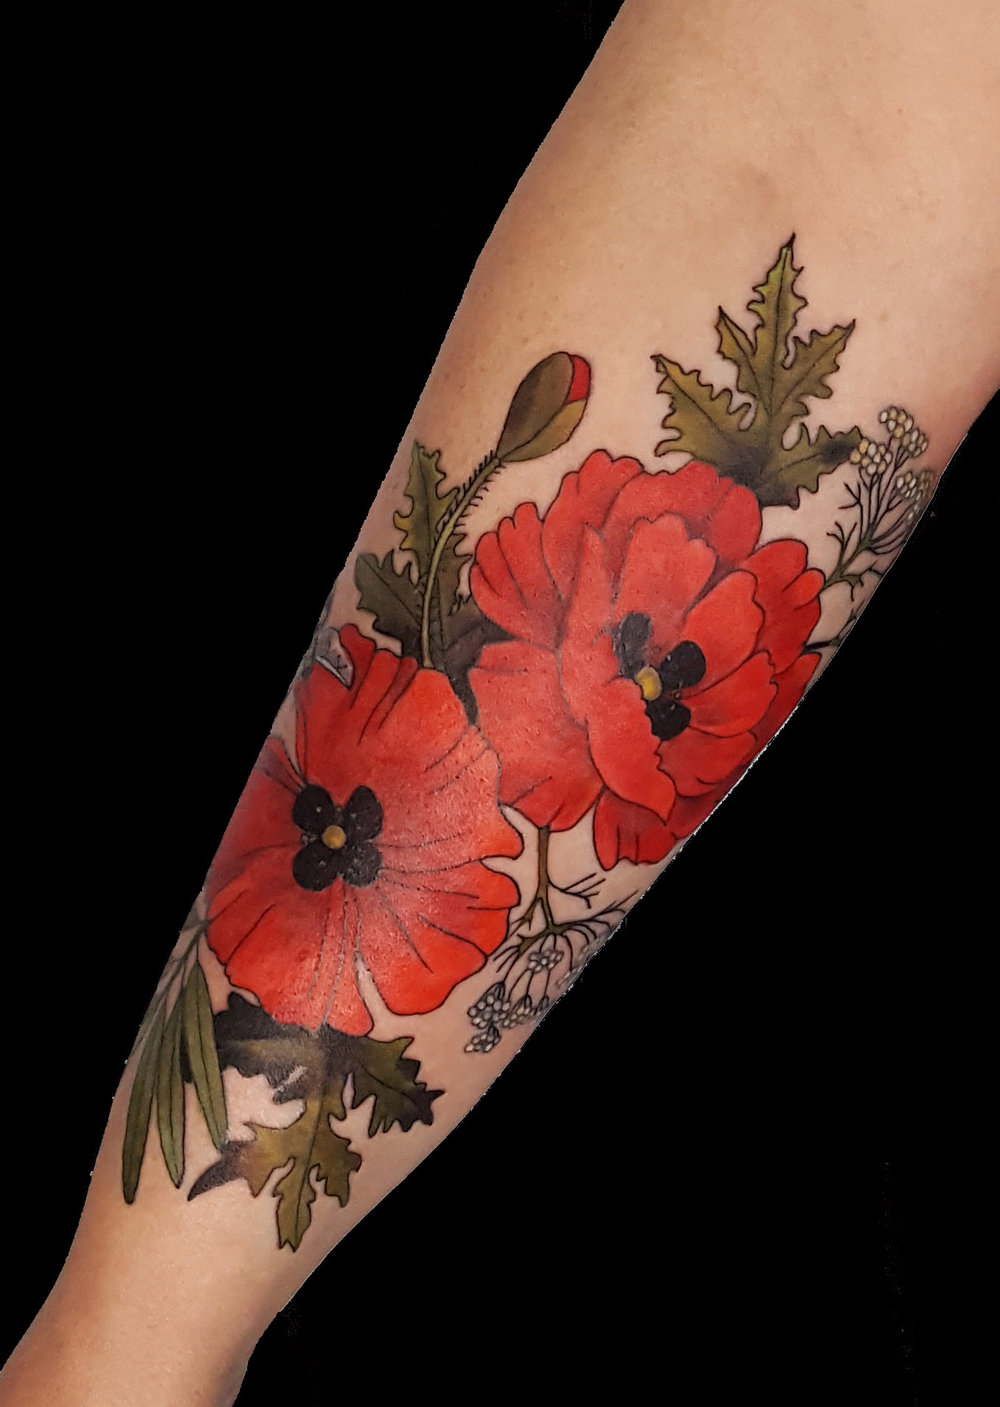 Poppies, Sage, and Queen Anne's Lace